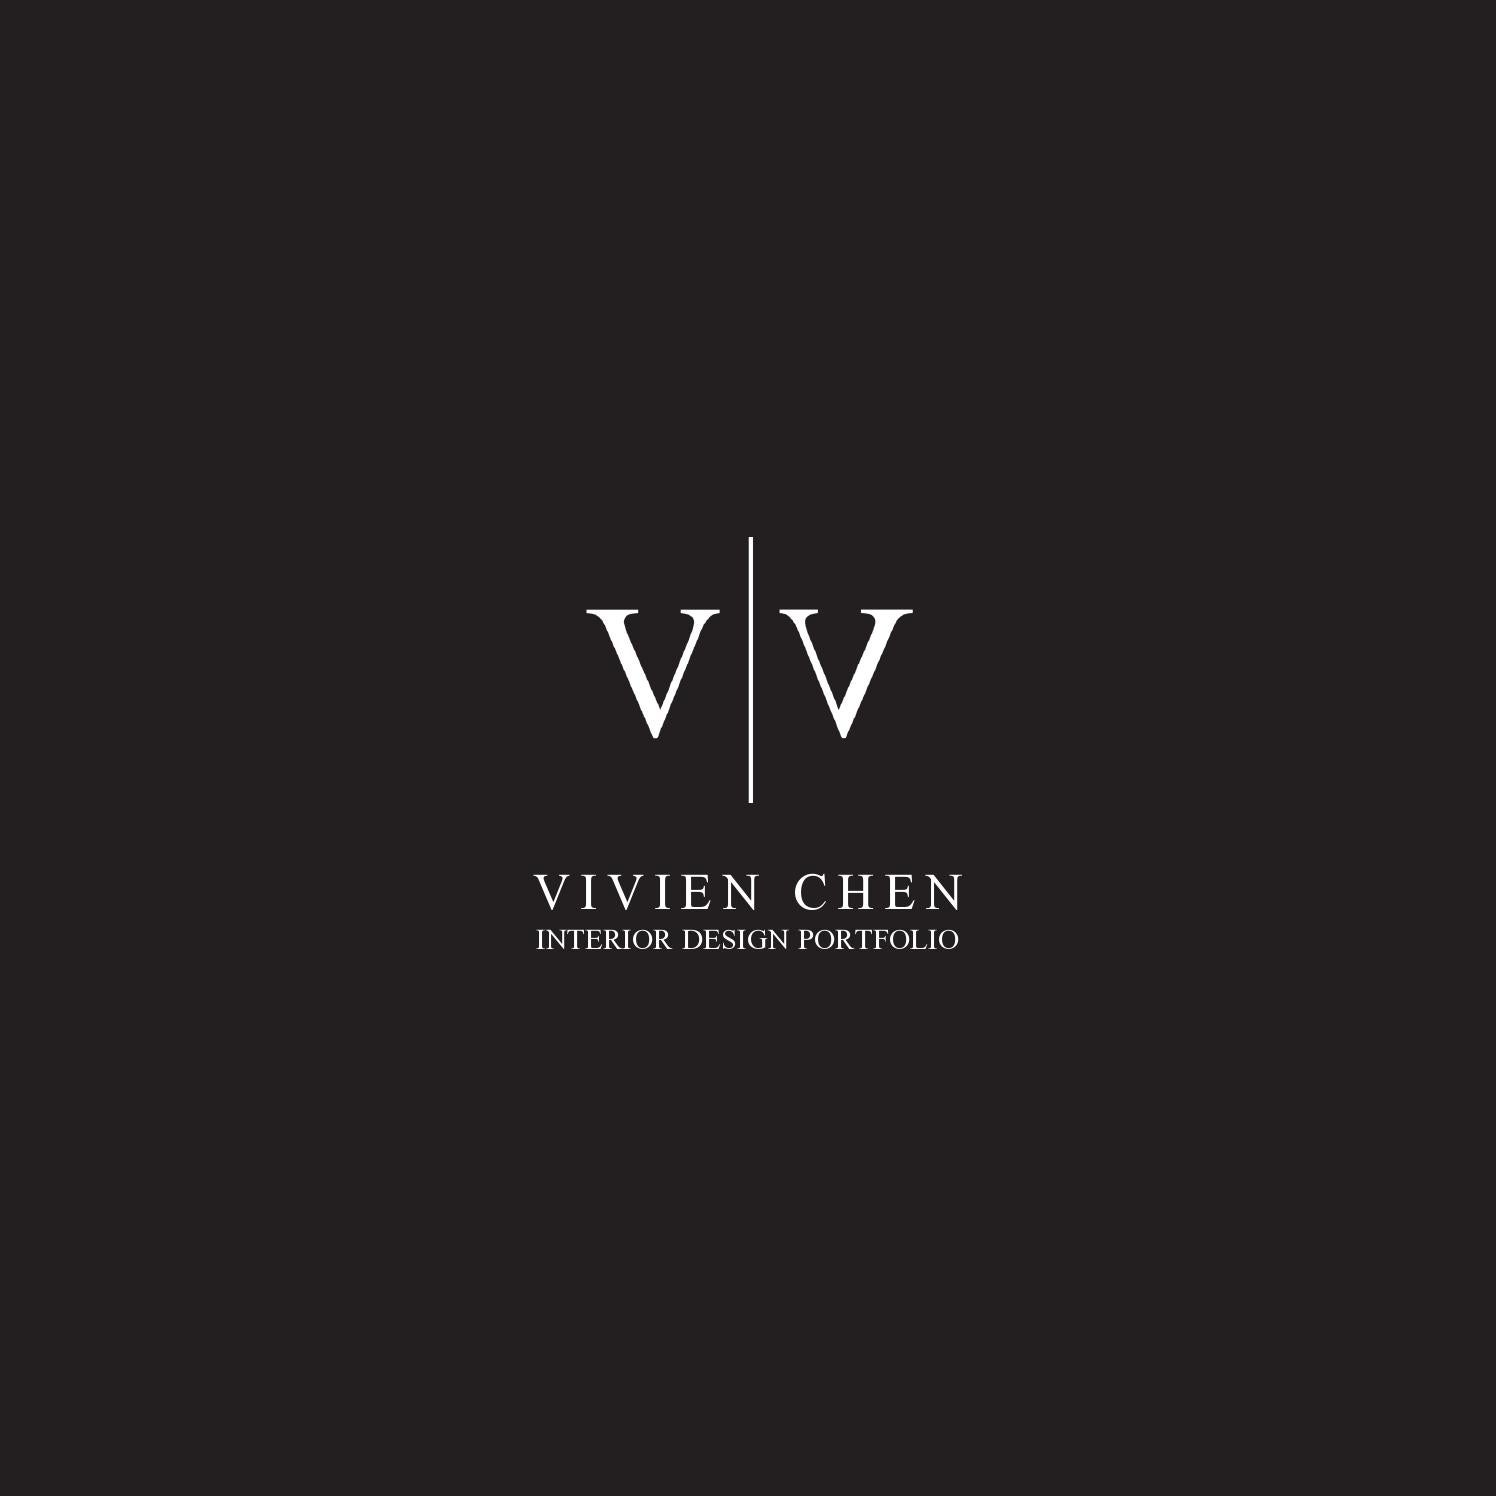 Vivien chen interior design portfolio by vivien chen issuu for Best names for interior designing firm